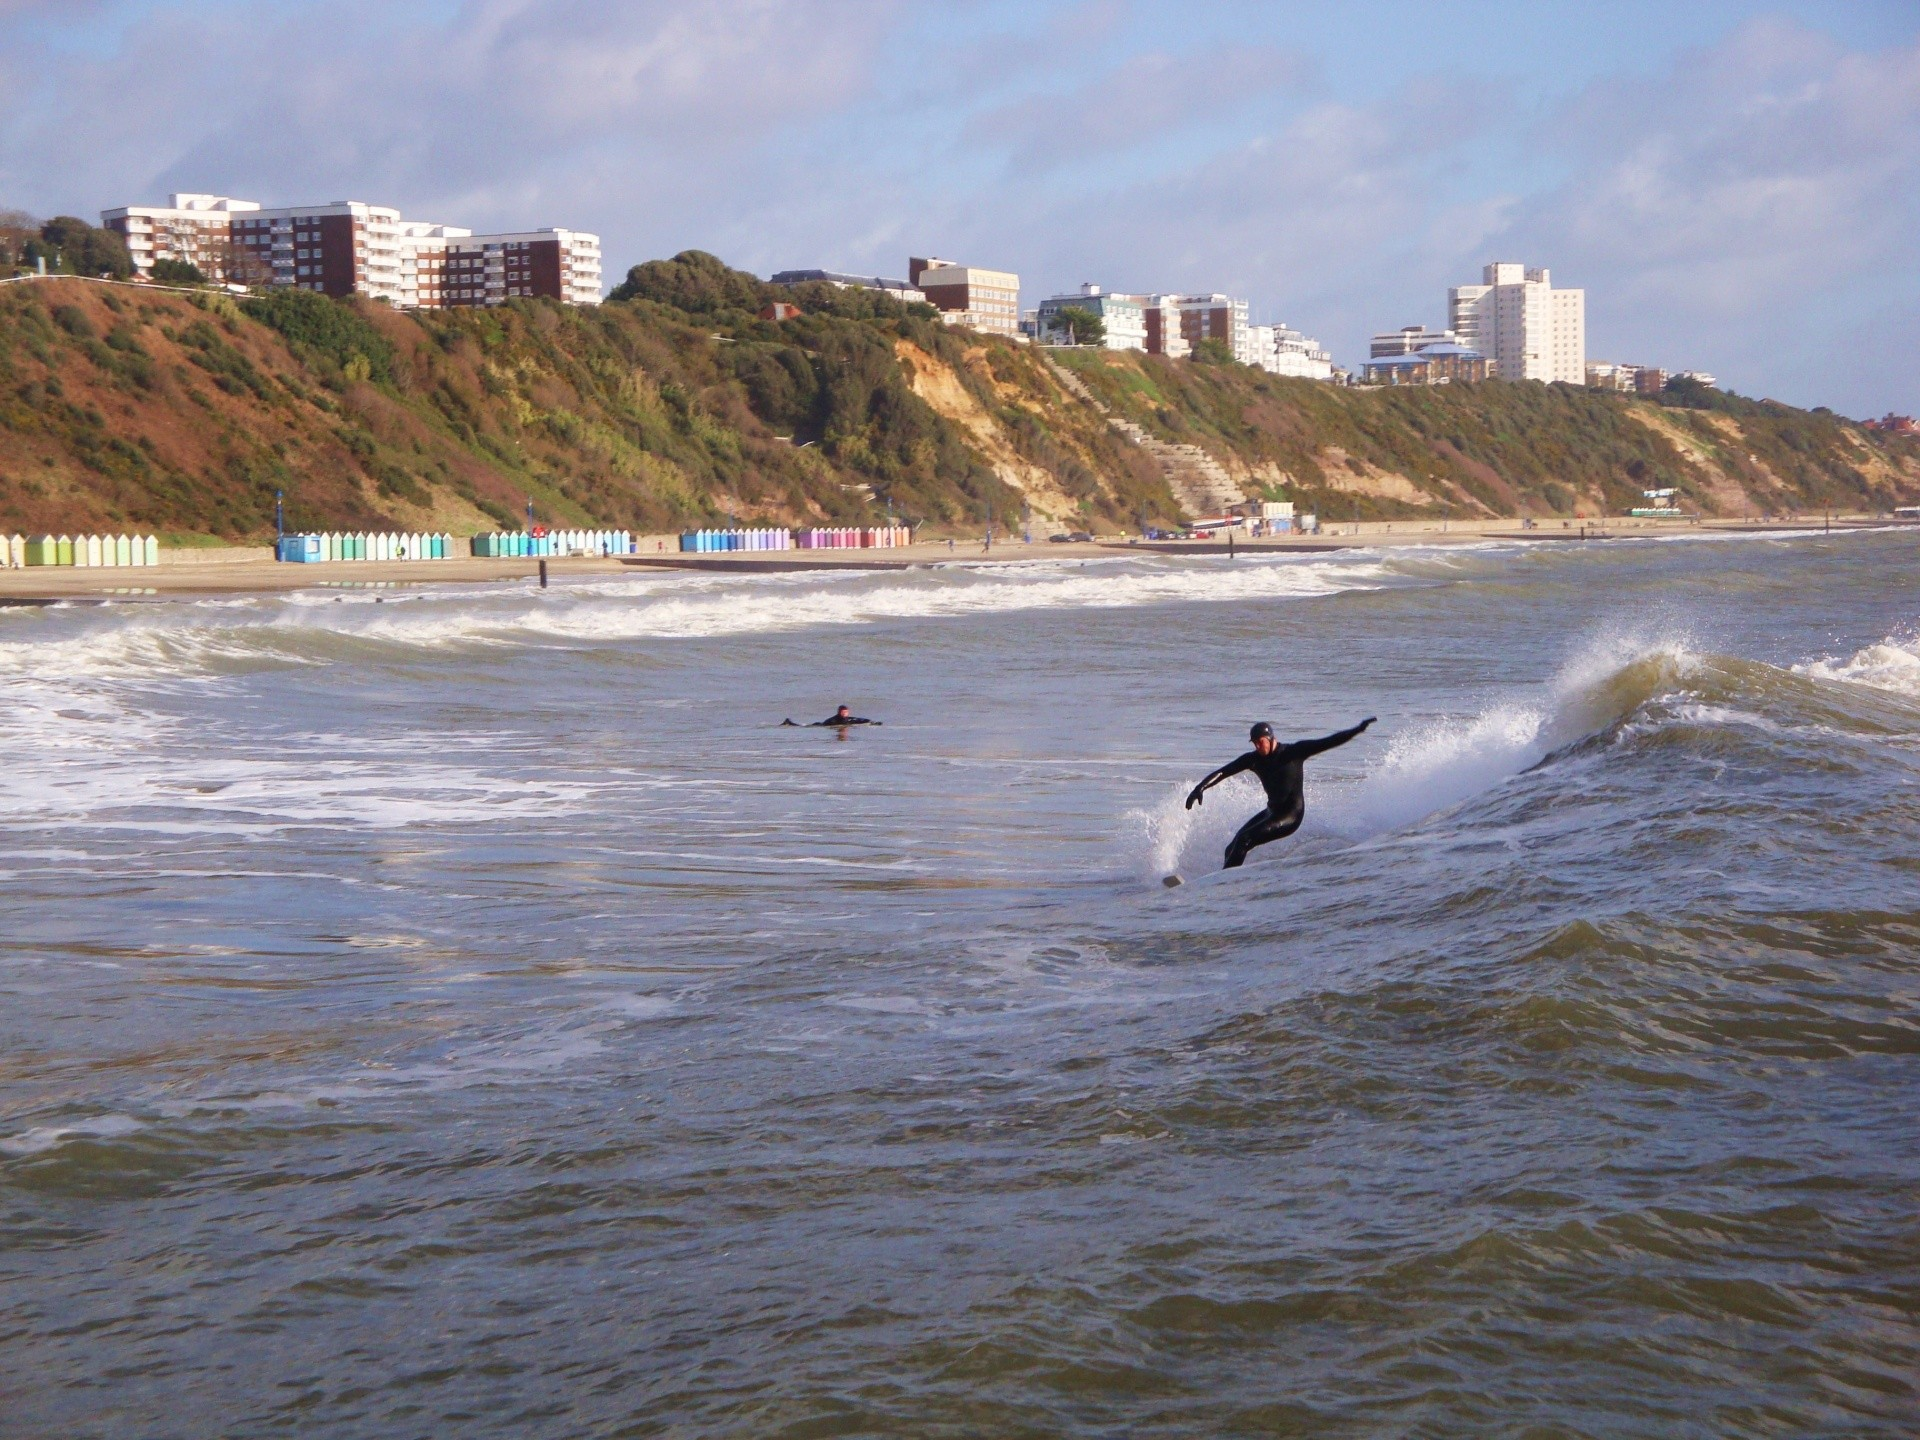 Kerrie Ann's photo of Bournemouth